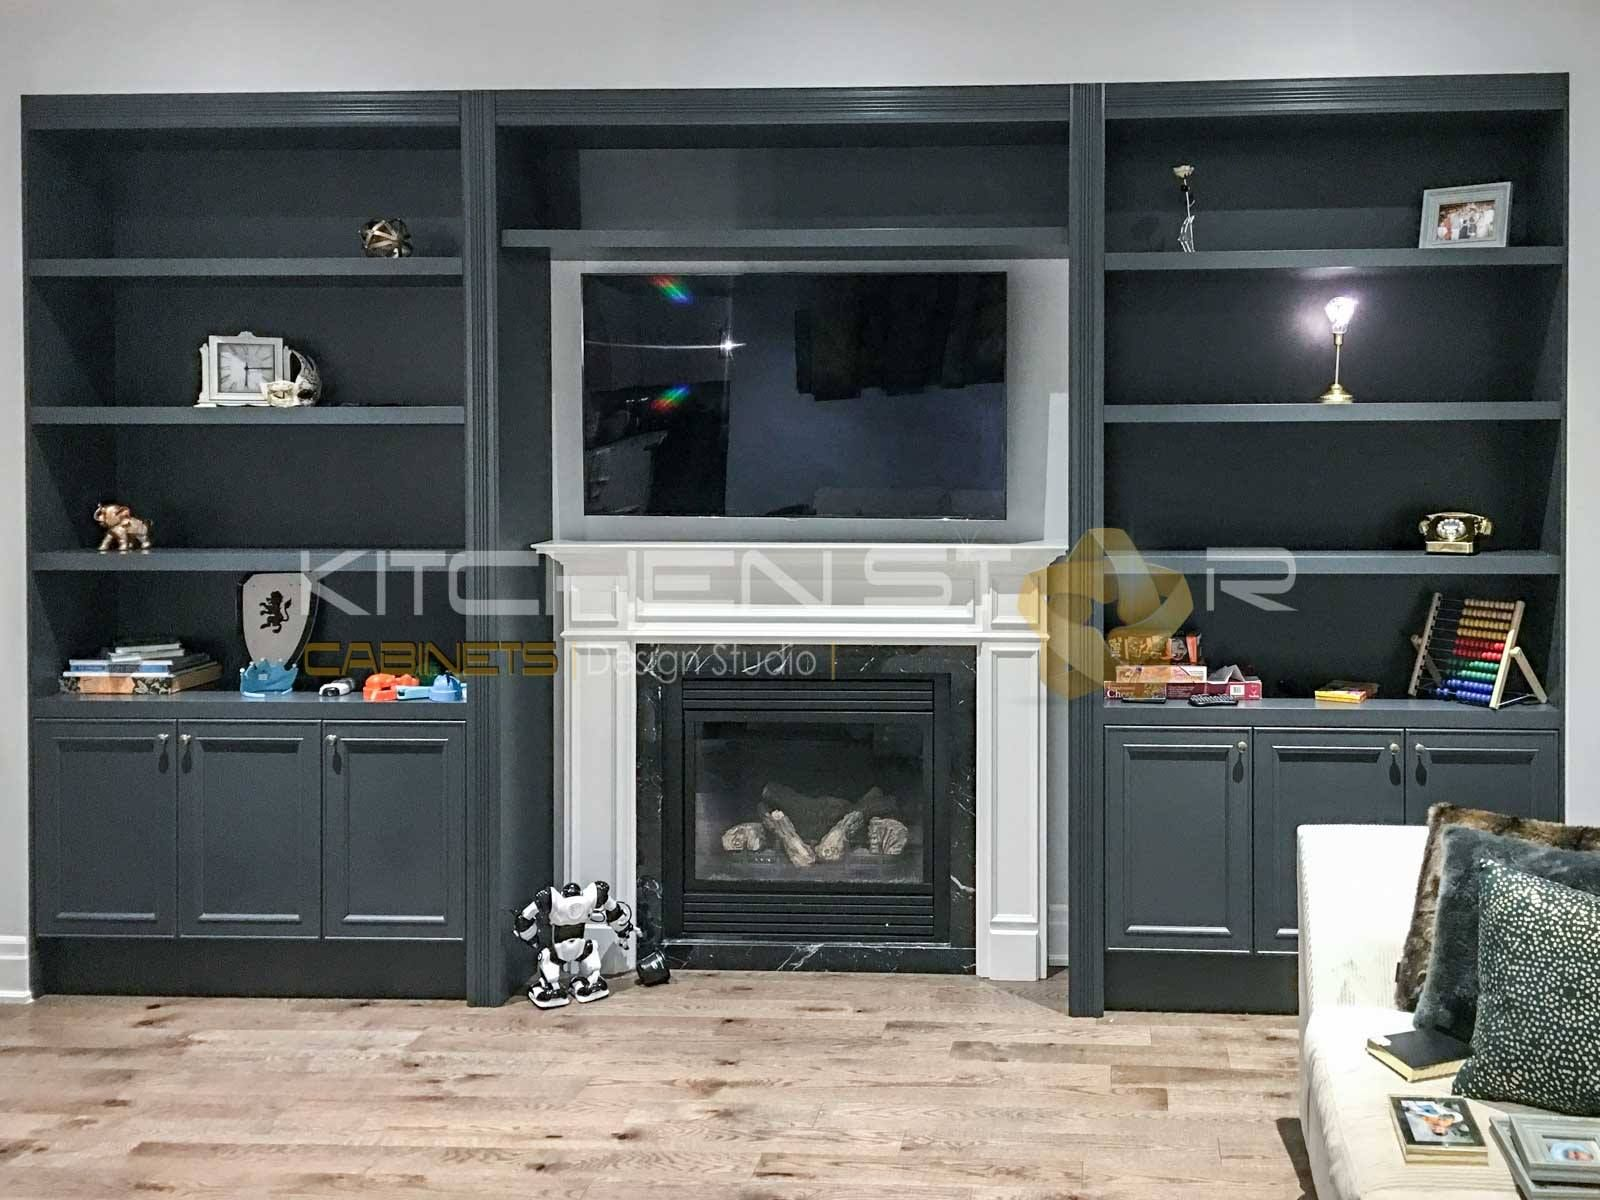 Custom Wall Unit | Kitchen Star Cabinets Http://www.kitchenstarcabinet.com